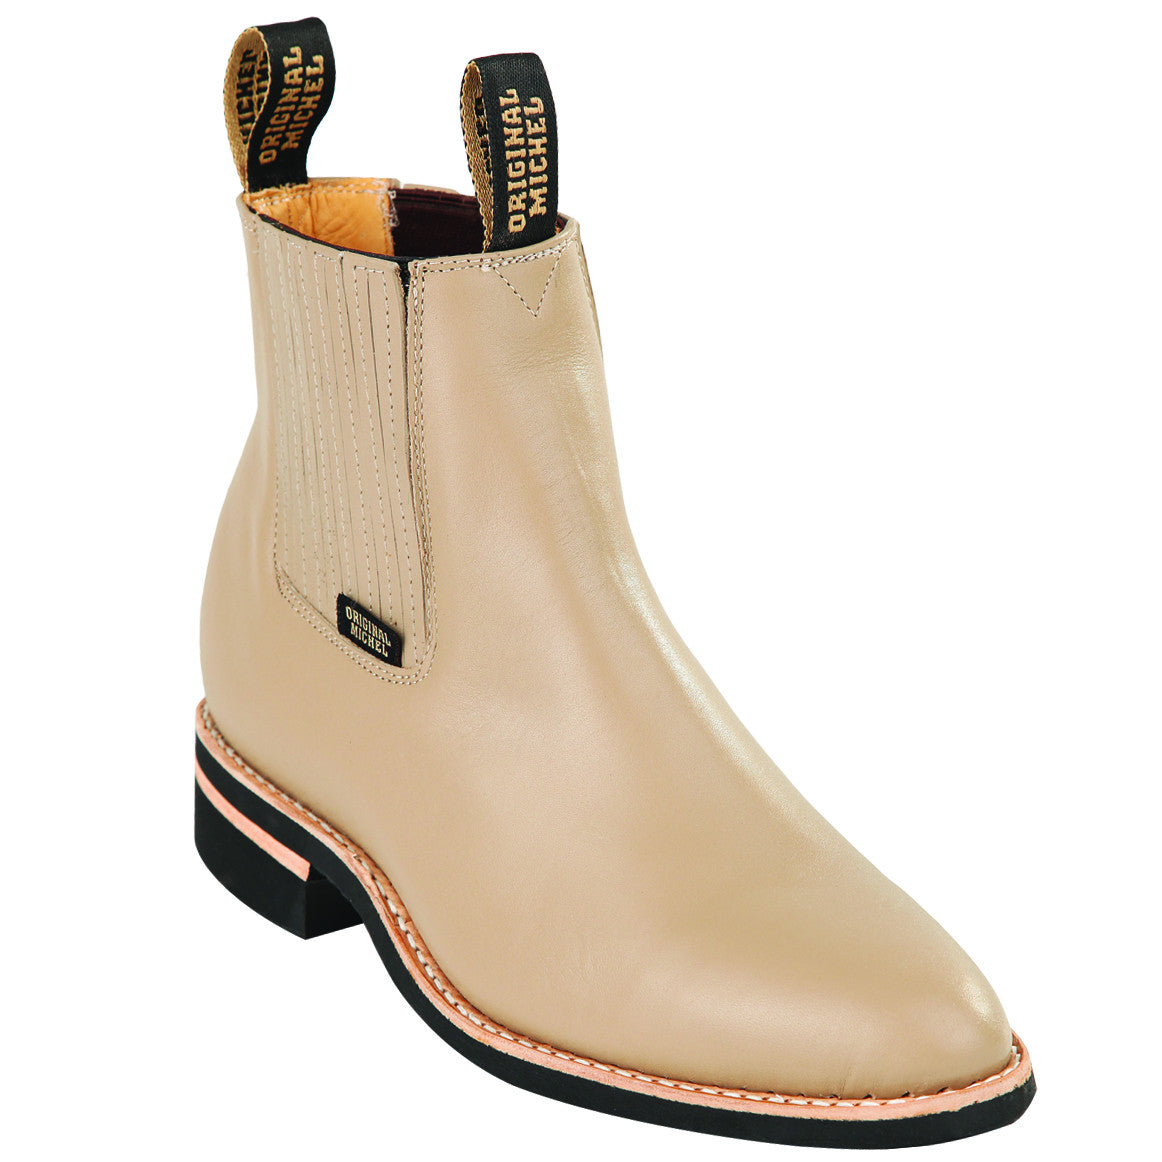 Narrow Sole with Natural Edge Napa Short Boot KE-64C4611